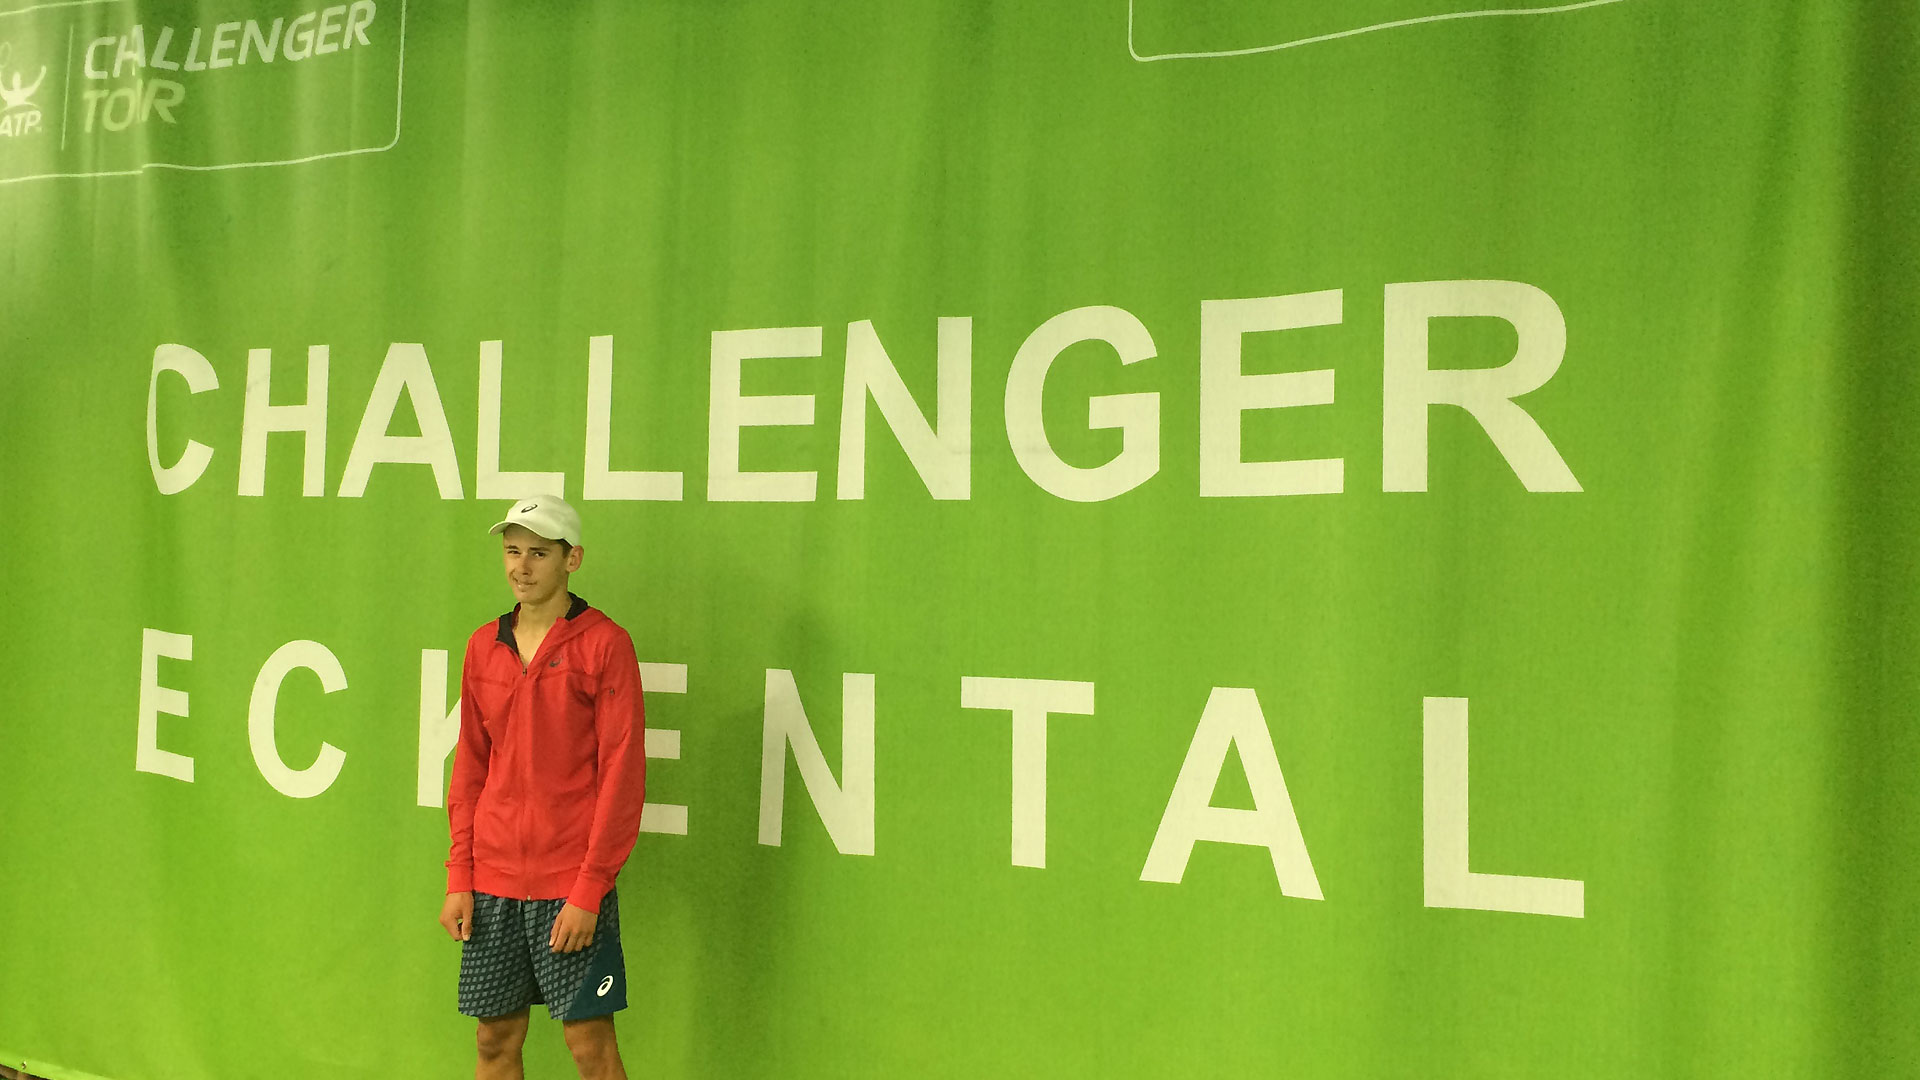 Alex De Minaur is enjoying a breakthrough week at the ATP Challenger Tour event in Eckental.